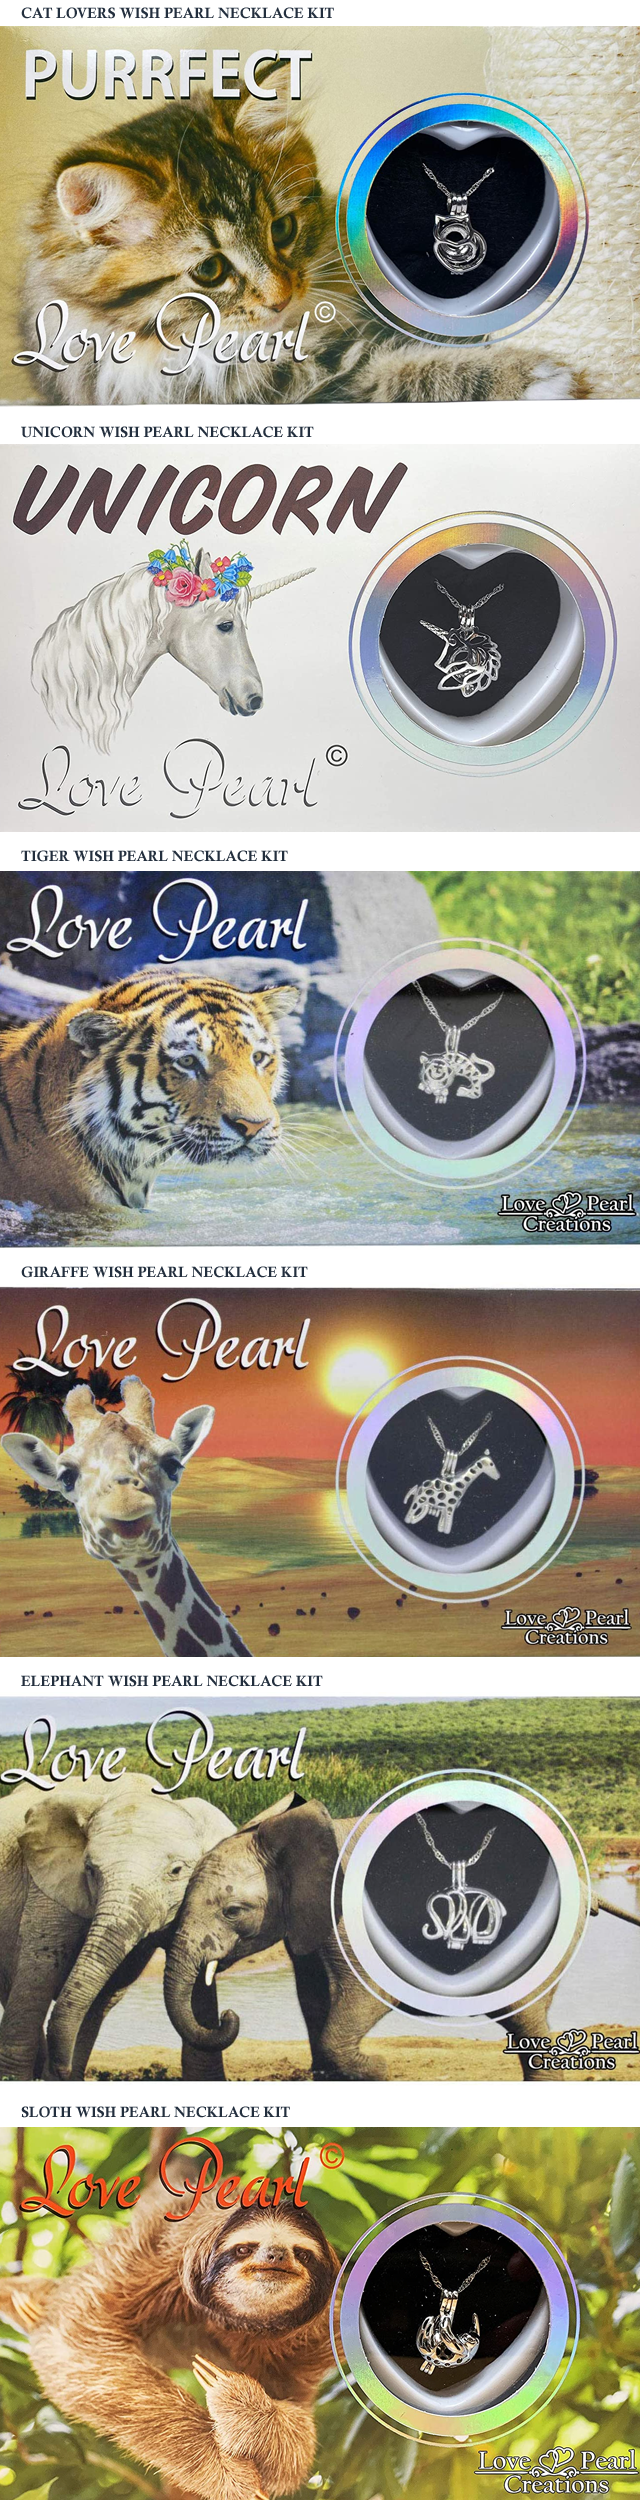 NEW ANIMAL WISH PEARL NECKLACE KITS